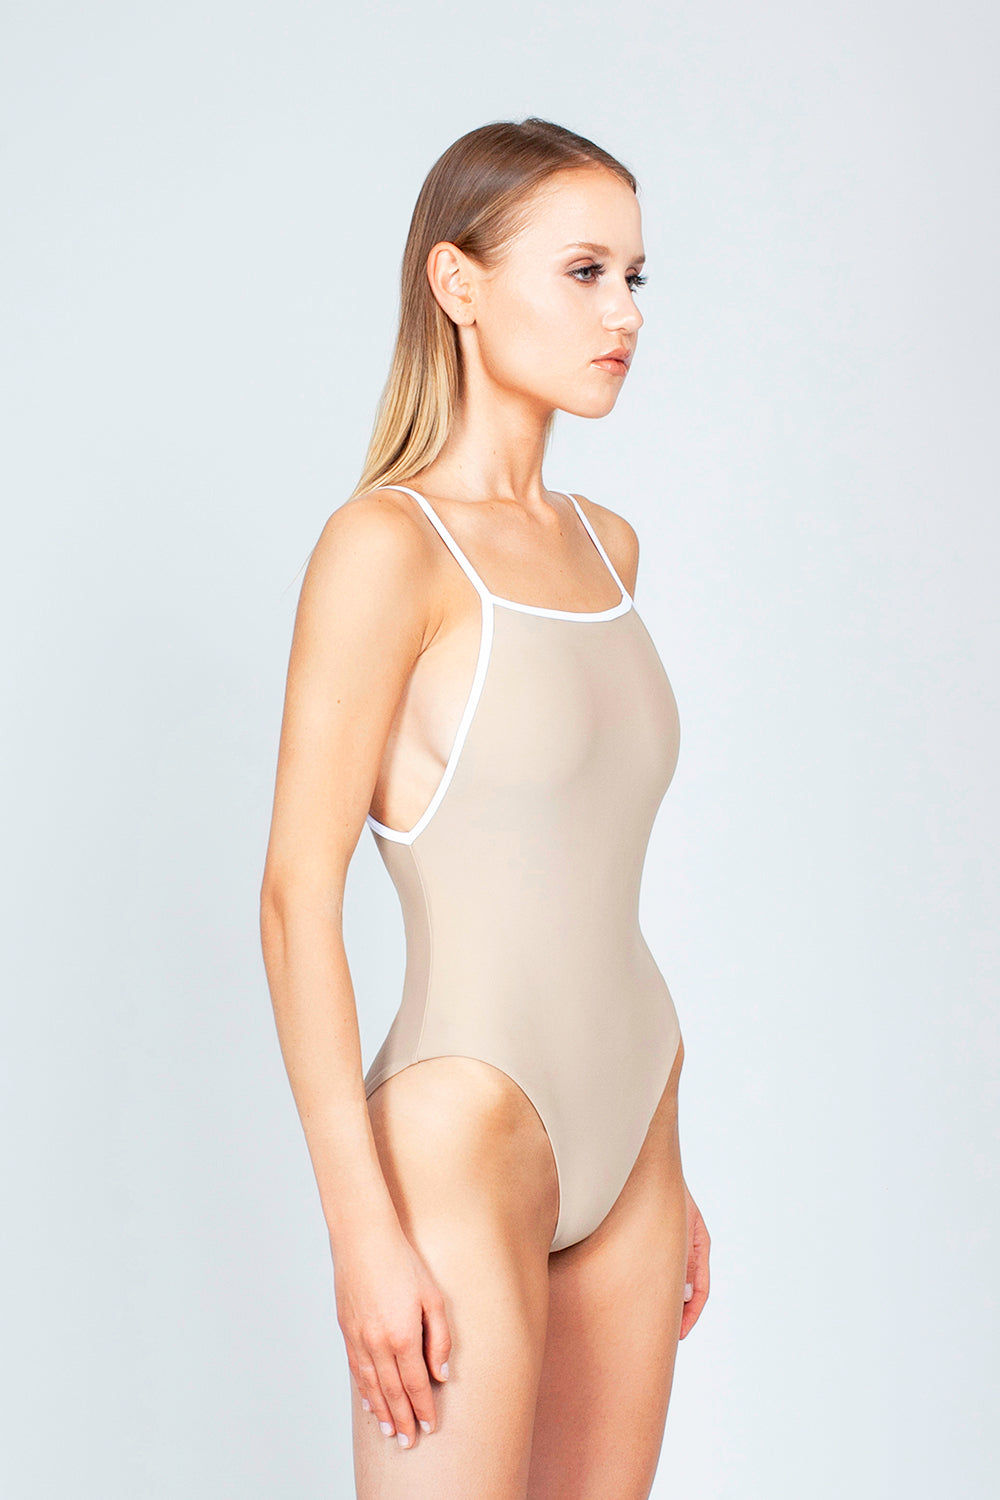 THE ONES WHO Margot High-Cut One Piece Swimsuit - Taupe Tan/White One Piece | Taupe Tan/White| The Ones Who Margot High Cut One Piece Swimsuit - Taupe Tan/White Features:   Square neckline  Adjustable shoulder straps High cut leg  Cheeky - moderate coverage  Made in LA  Fabric: 80% Nylon 20% Elastane Side View